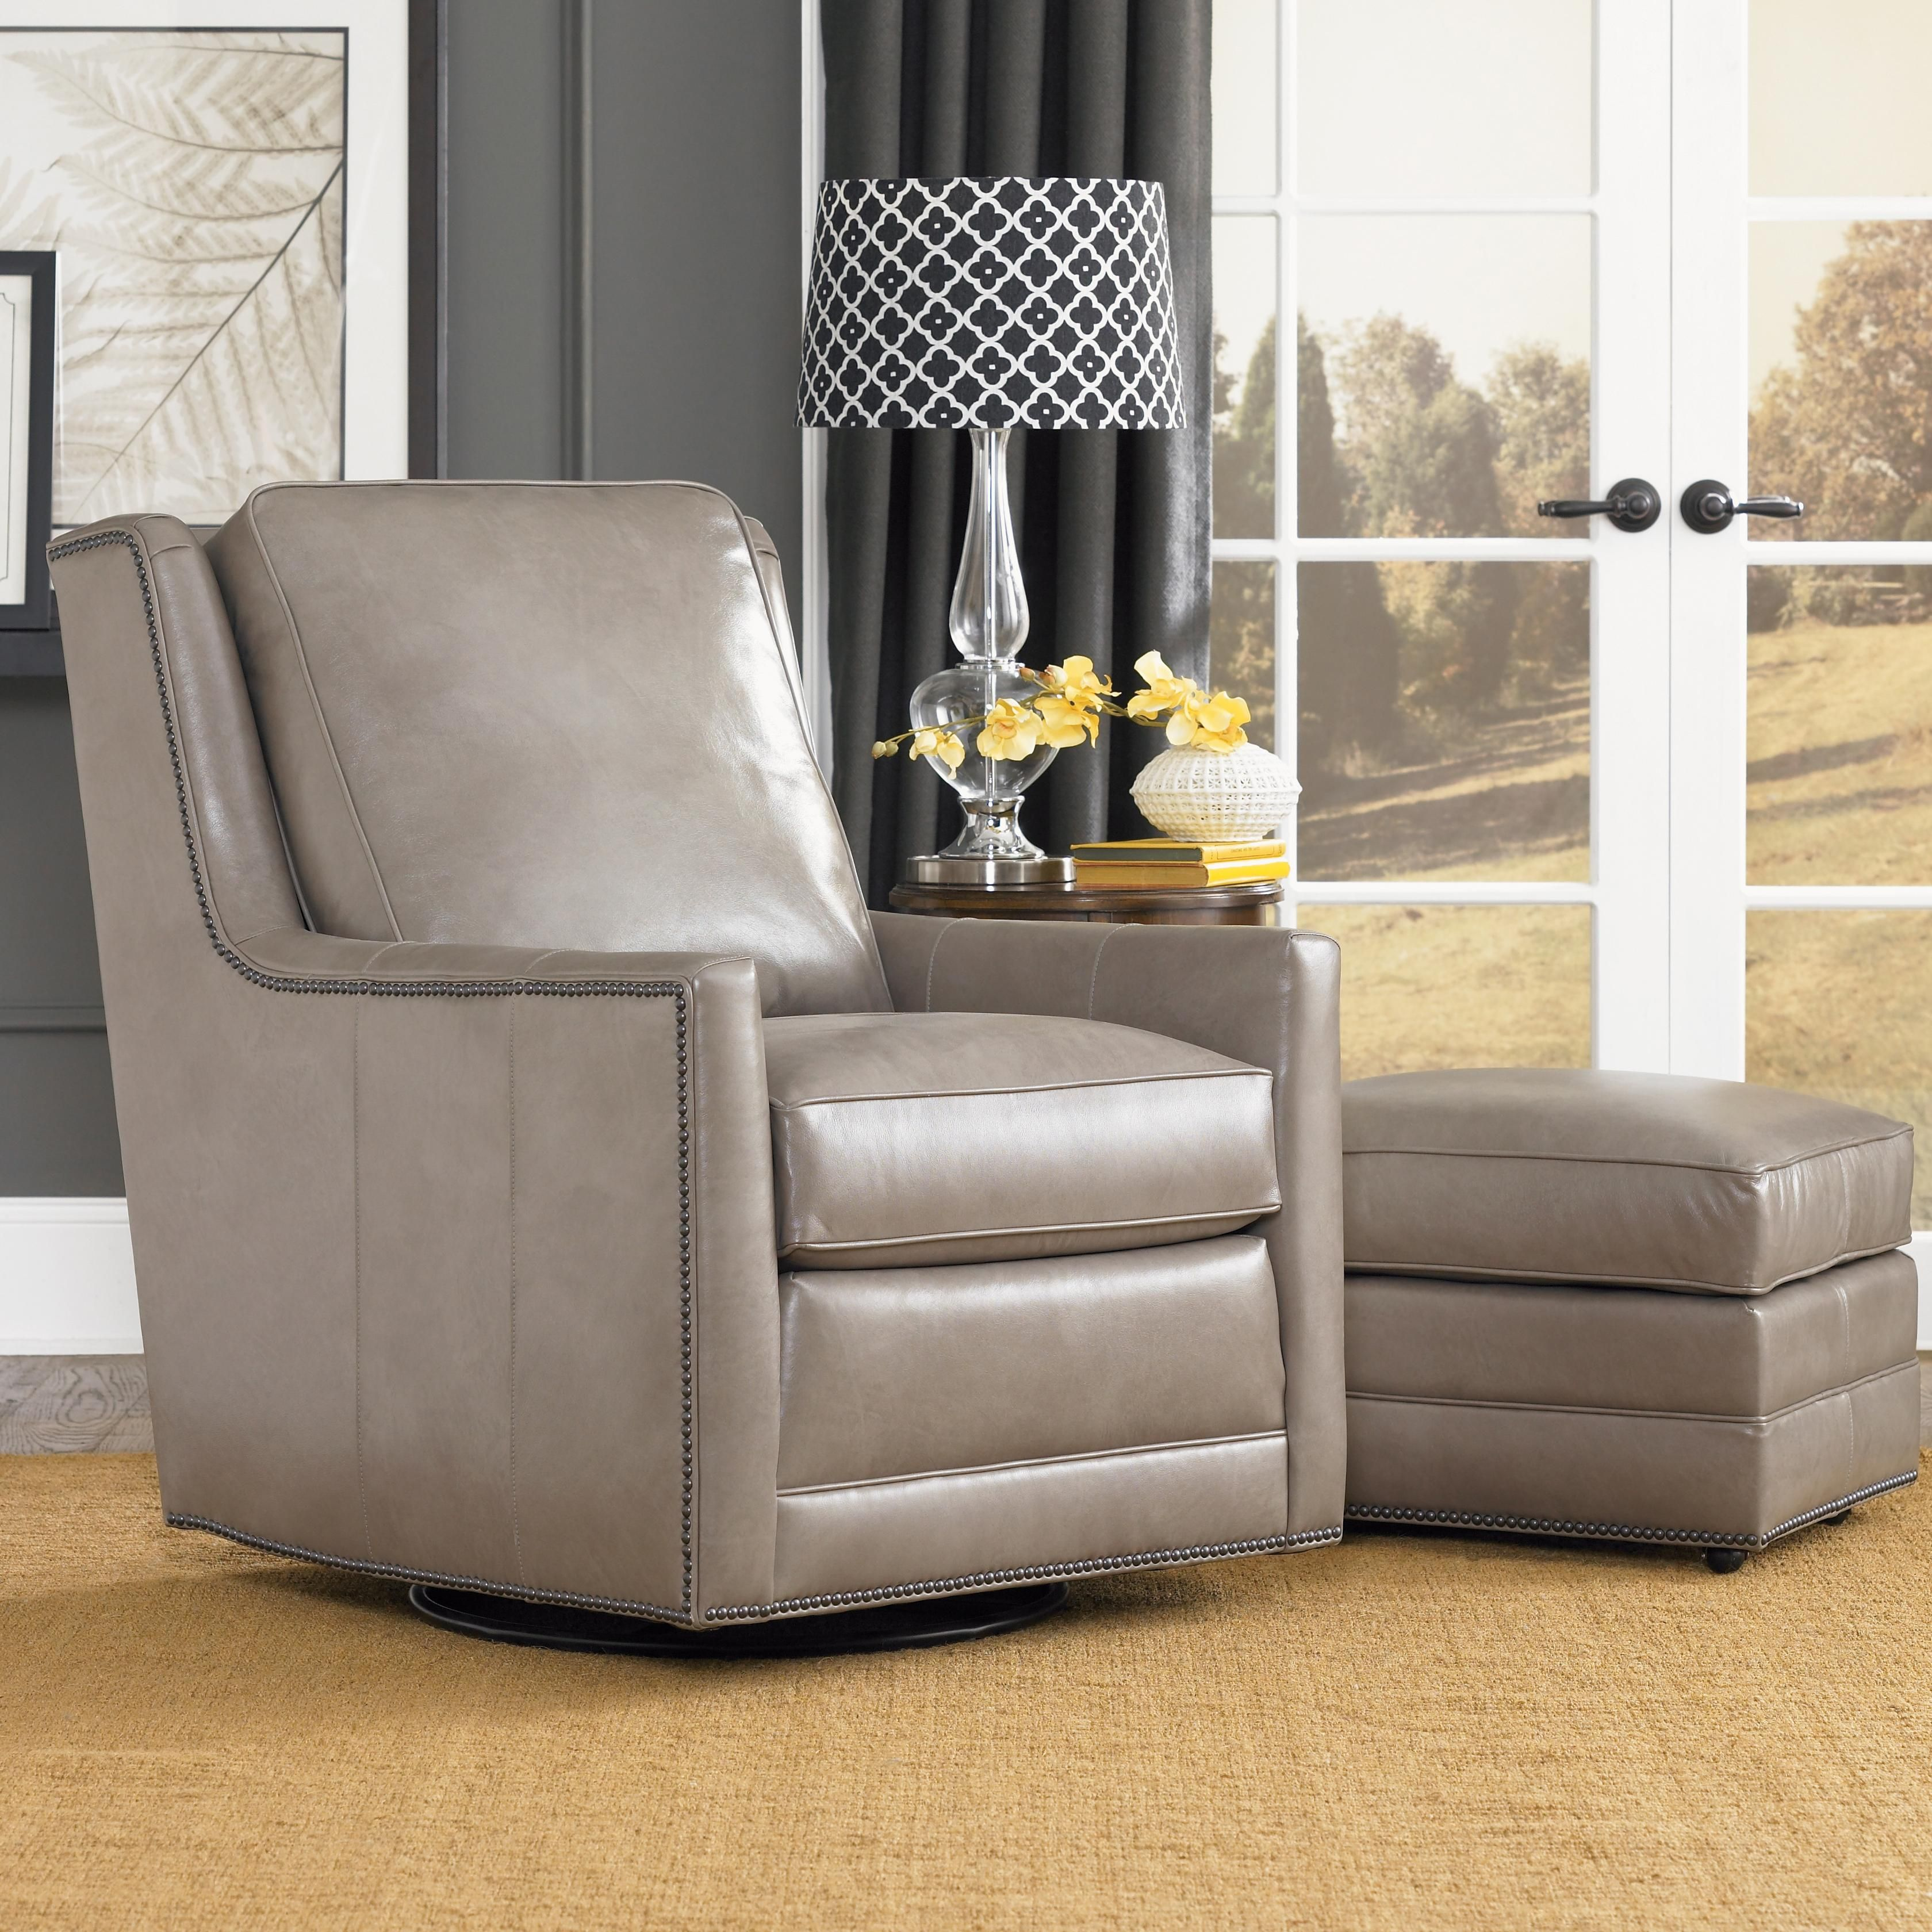 Swivel Chair/Recliner this color... Living room recliner